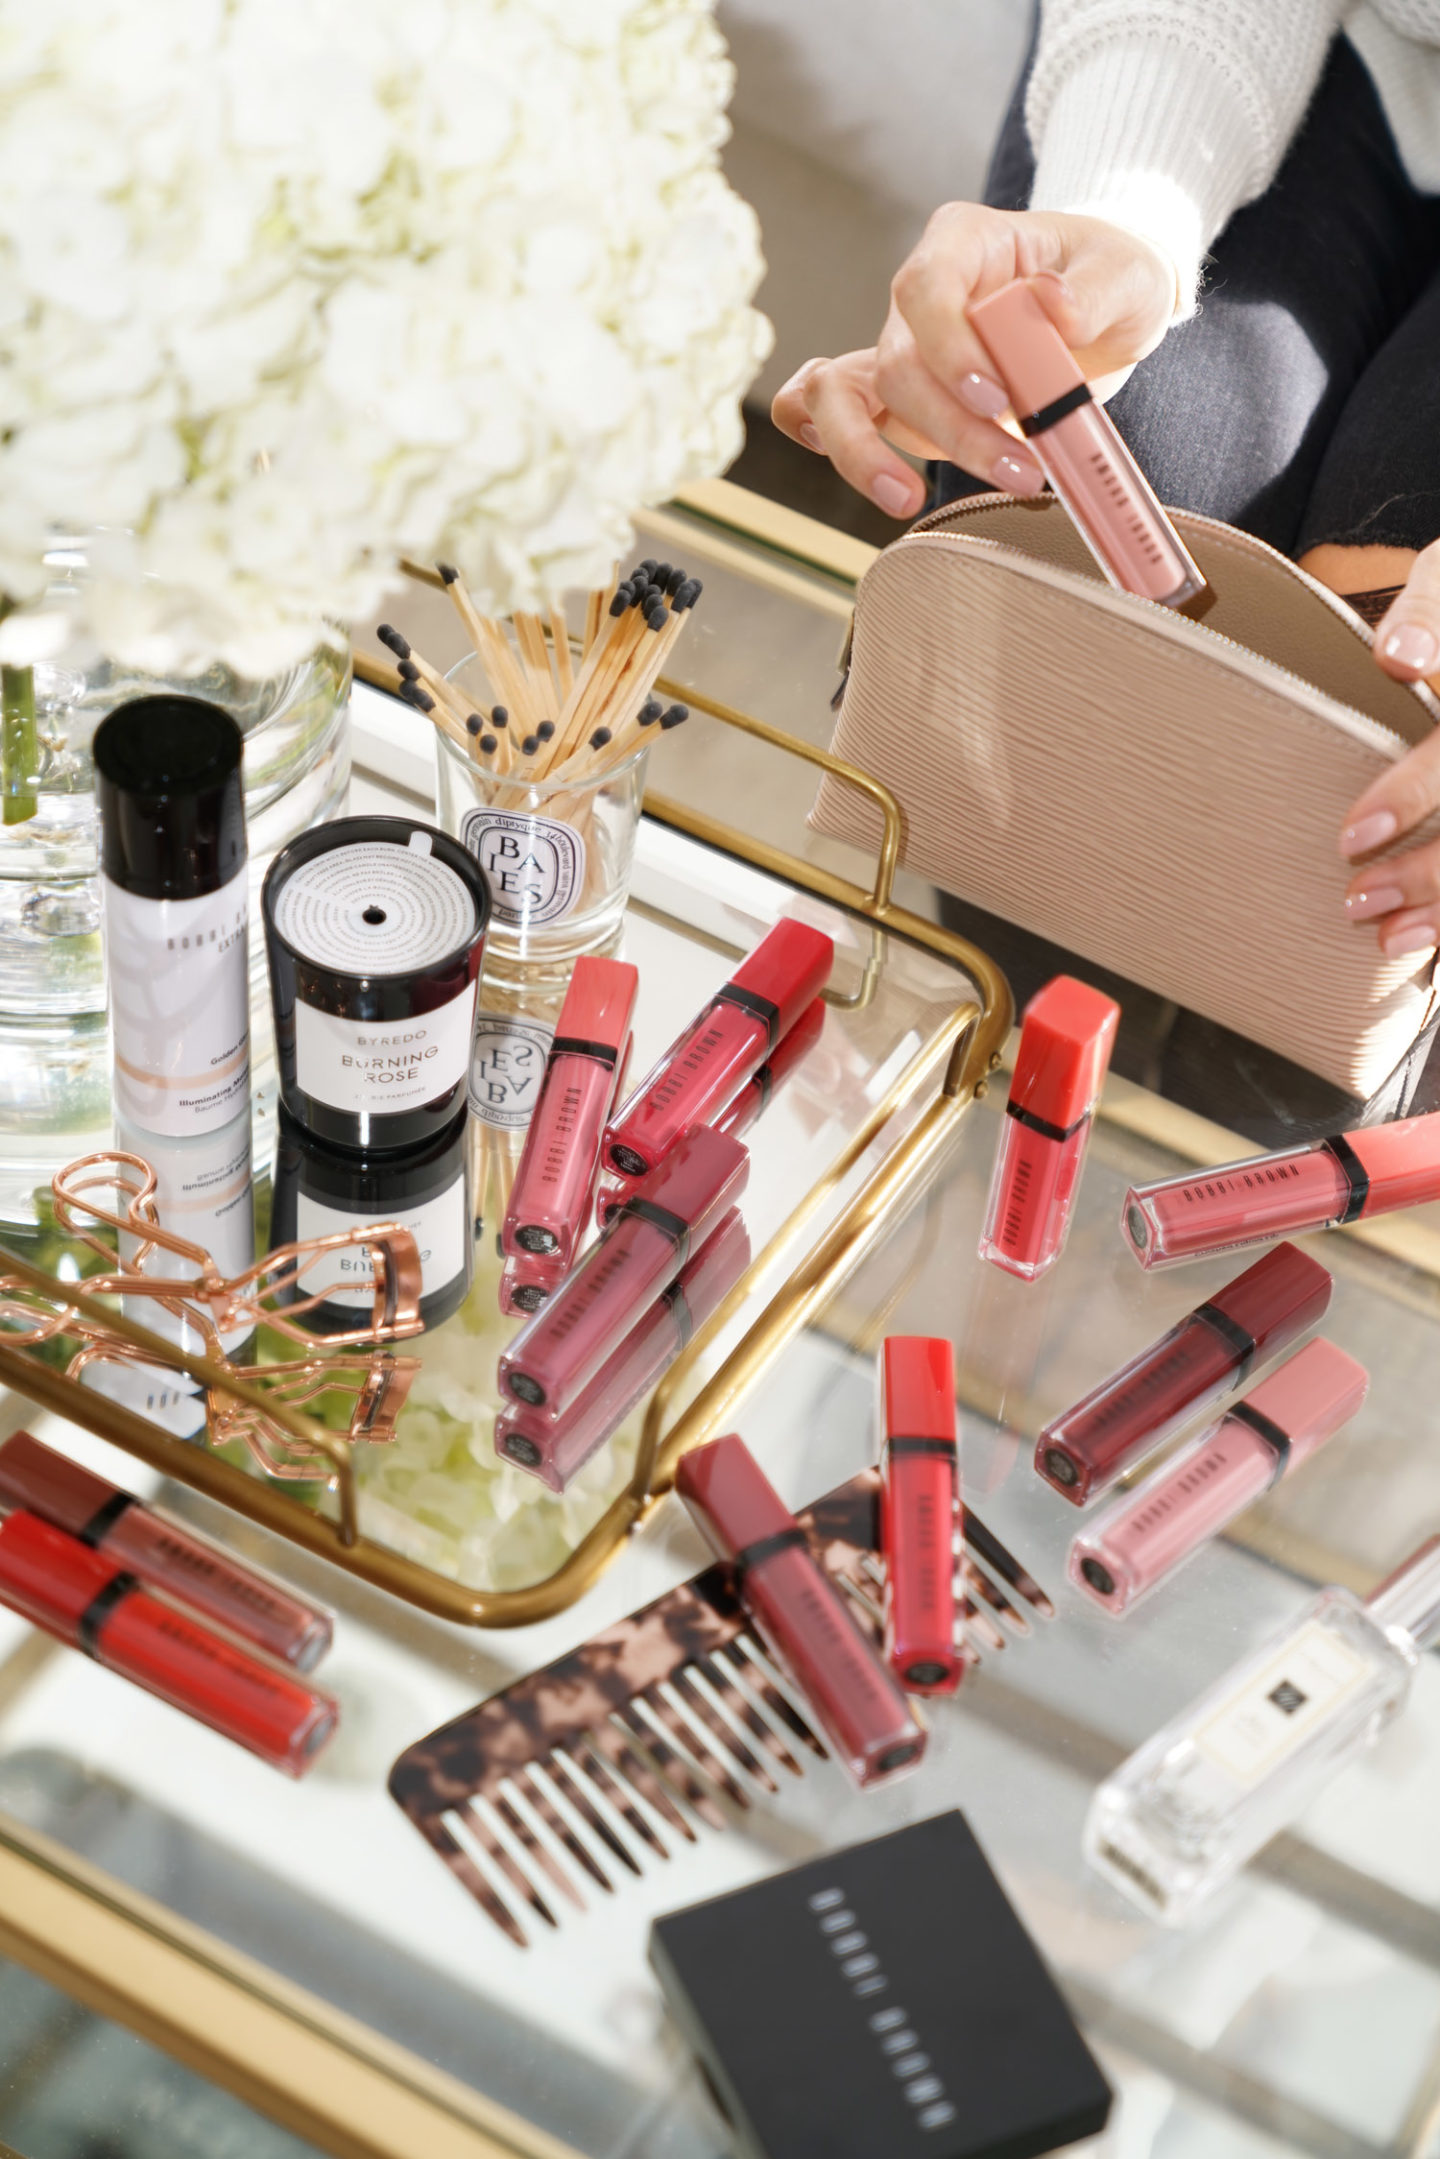 Bobbi Brown Crushed Liquid Lip Balm Review and Swatches | The Beauty Look Book